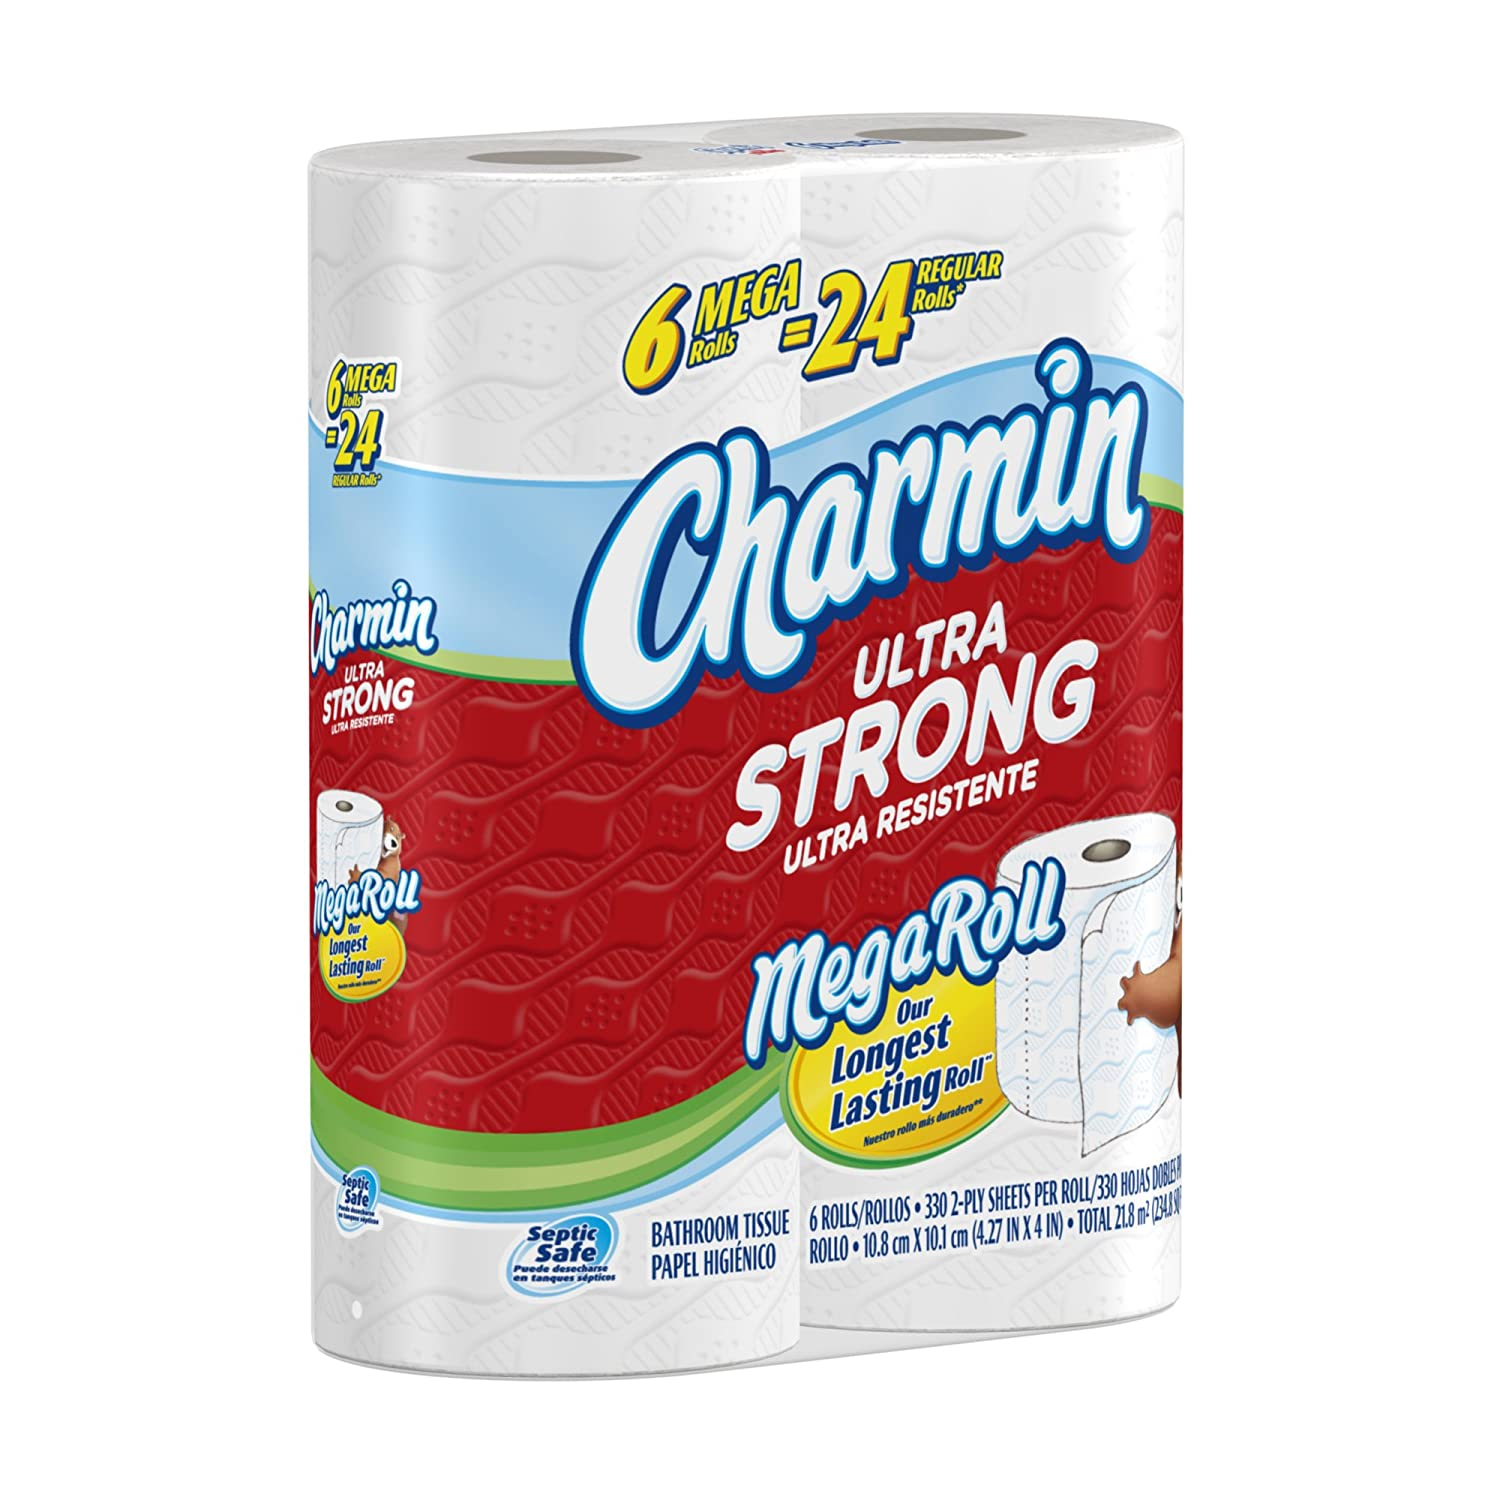 Charmin Ultra Strong Mega Toilet Paper Rolls, 6 Count (Pack of 3) $18.18